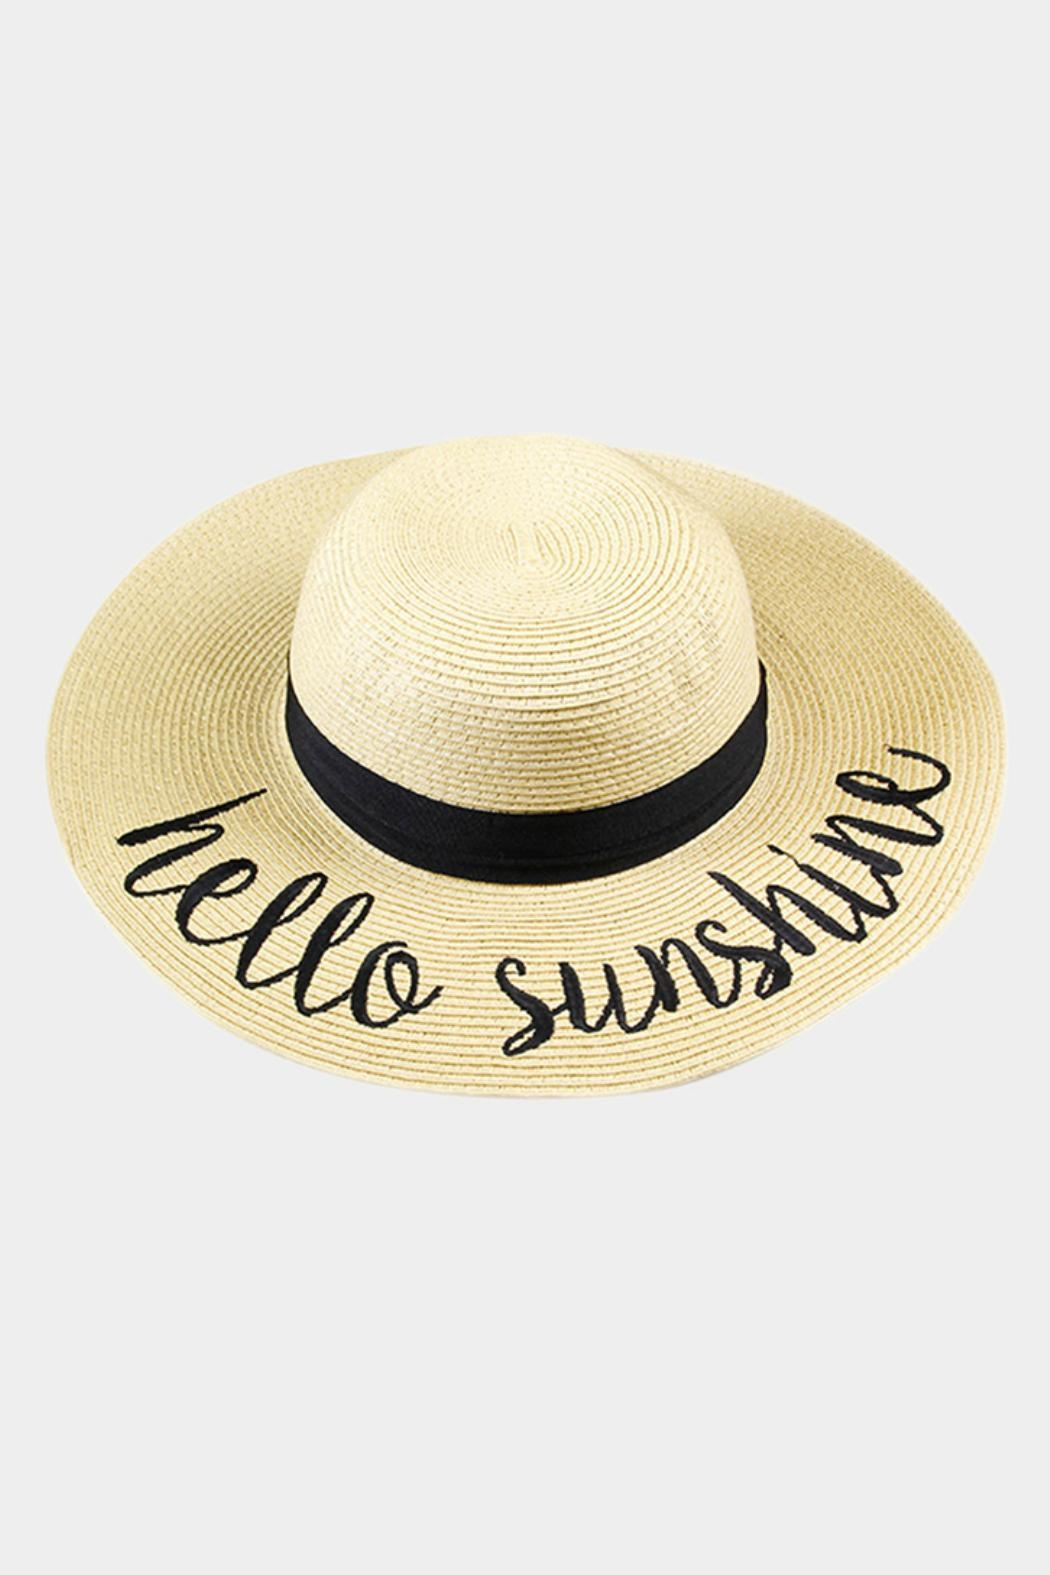 Embellish Embroidered Straw Hat - Front Full Image